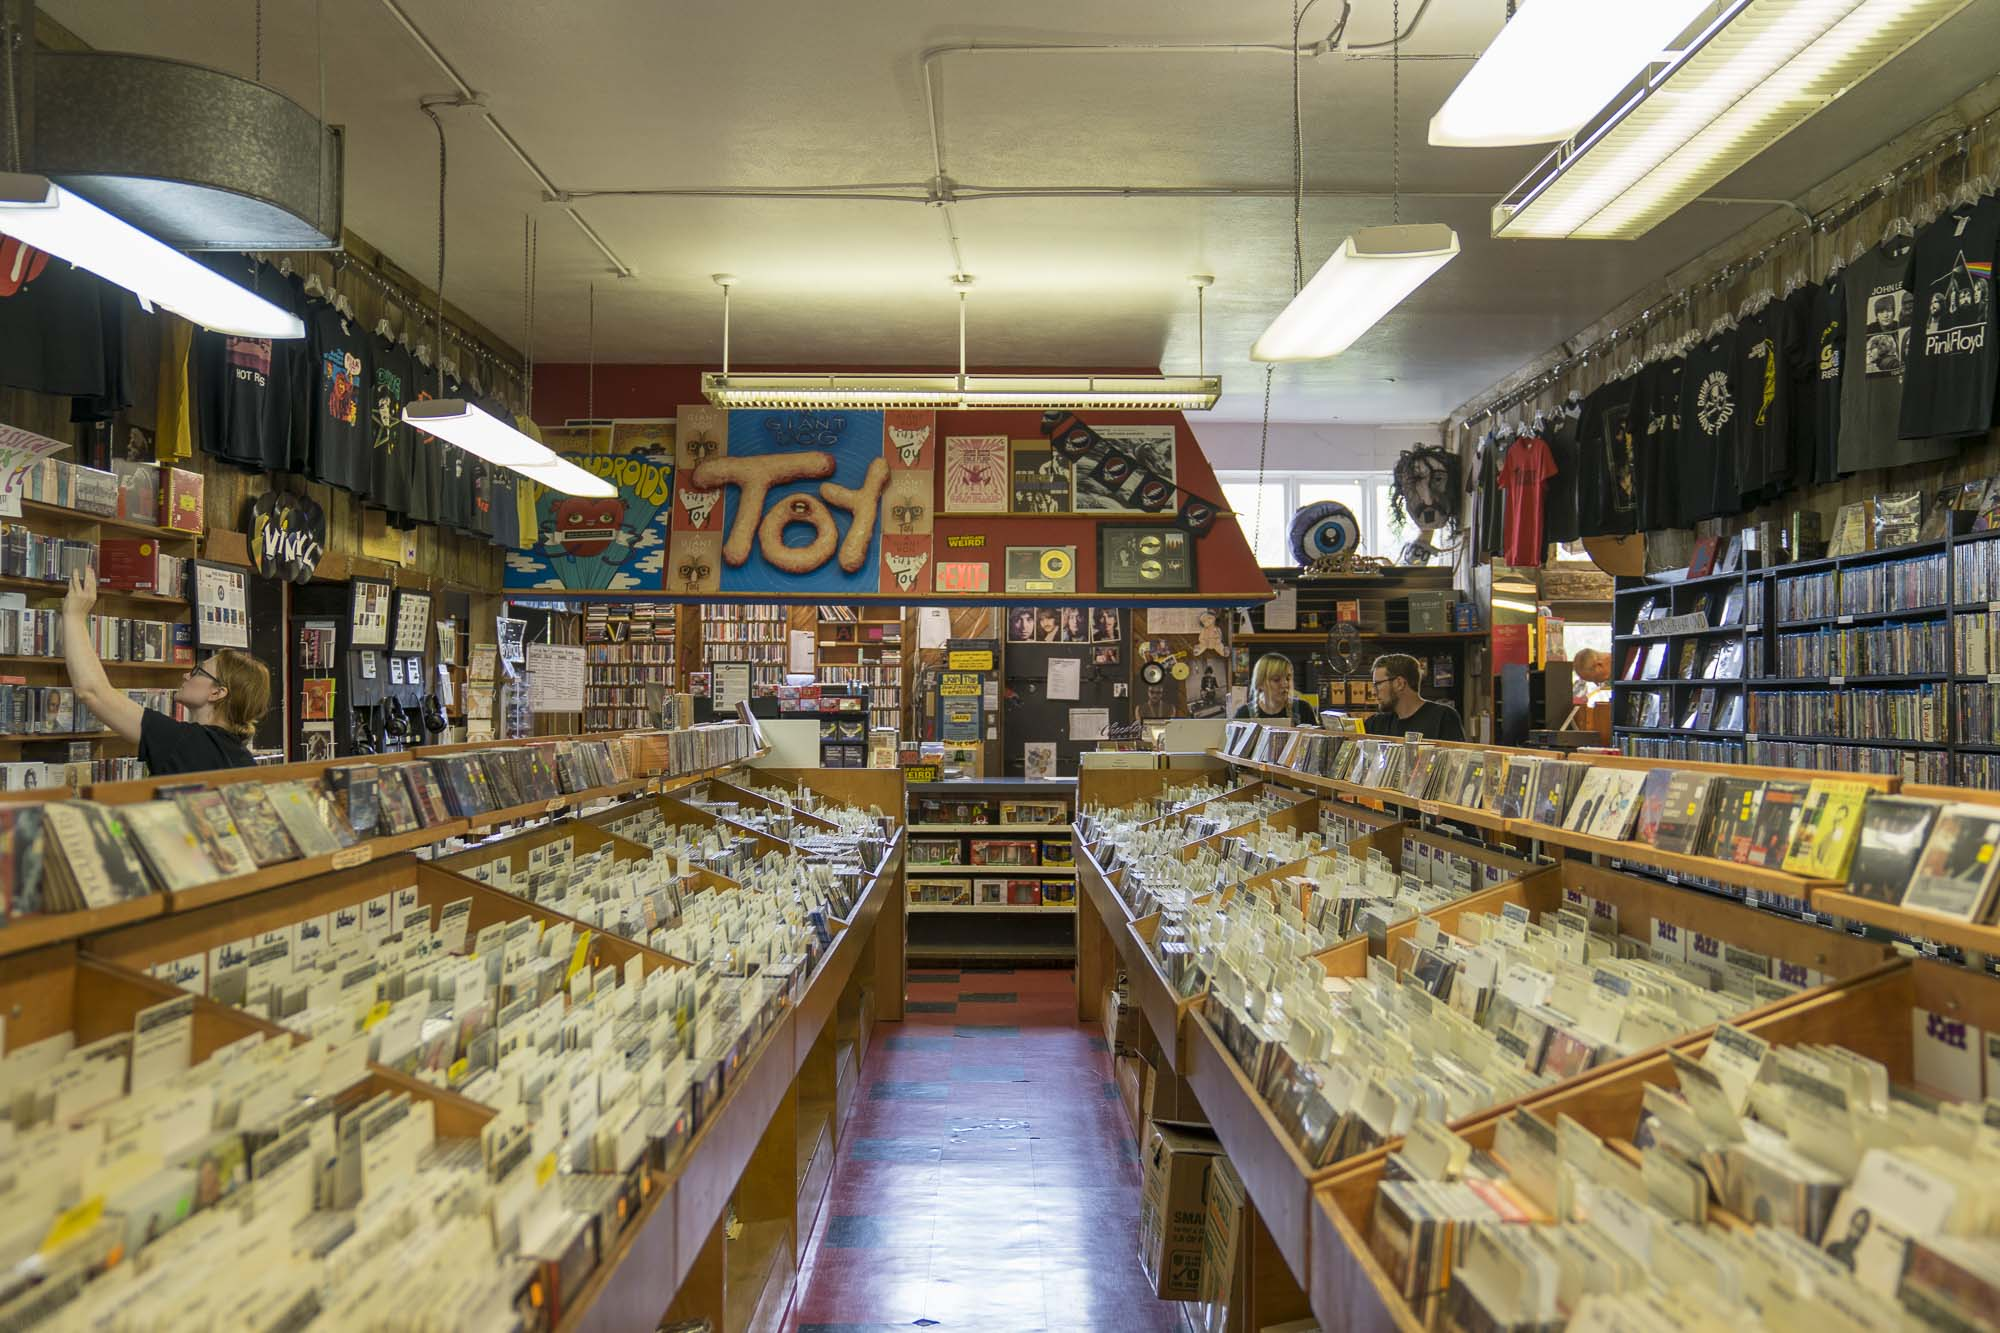 Snagging records at Music millenium is a local must for an Ultimate Day in Portland according to Dirt Road Travels.